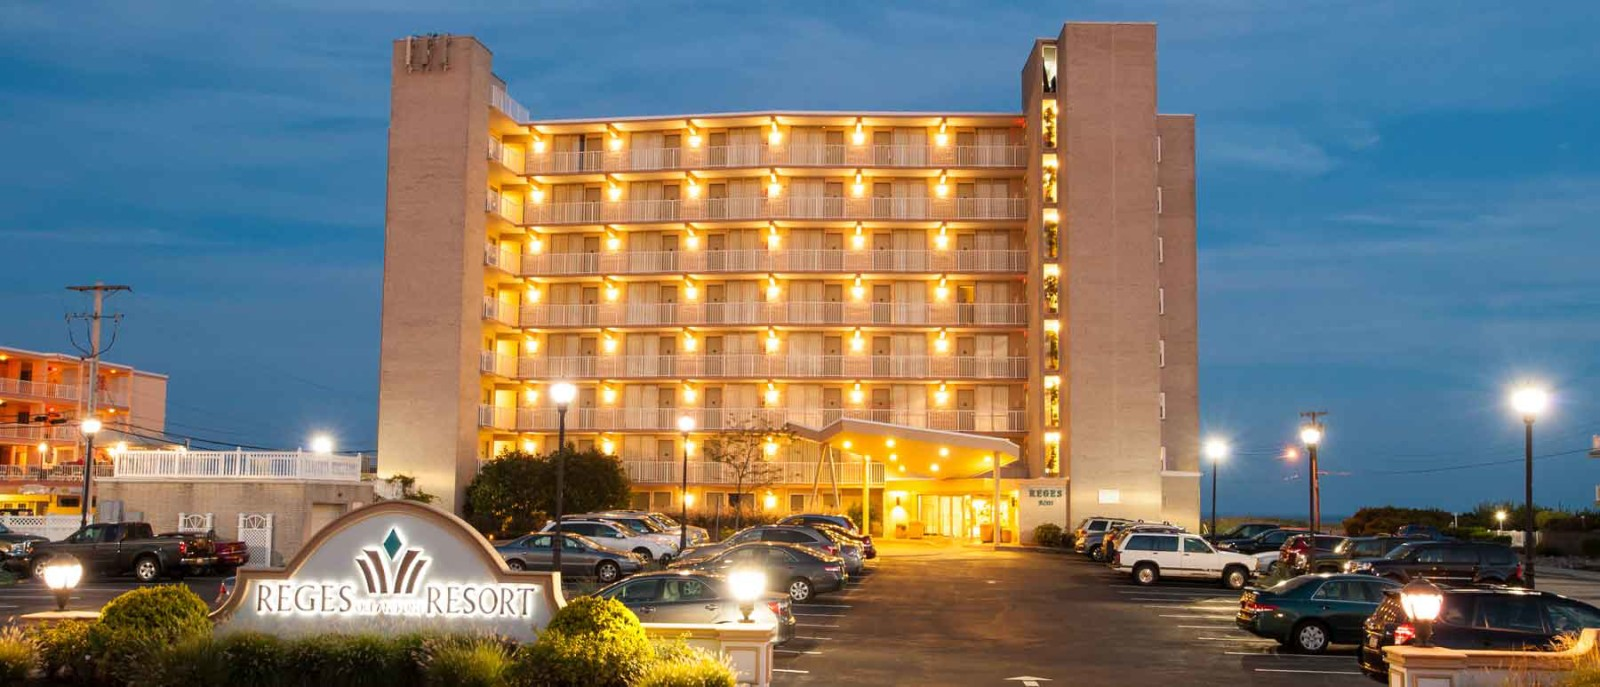 Hotels In Wildwood Rouydadnews Info